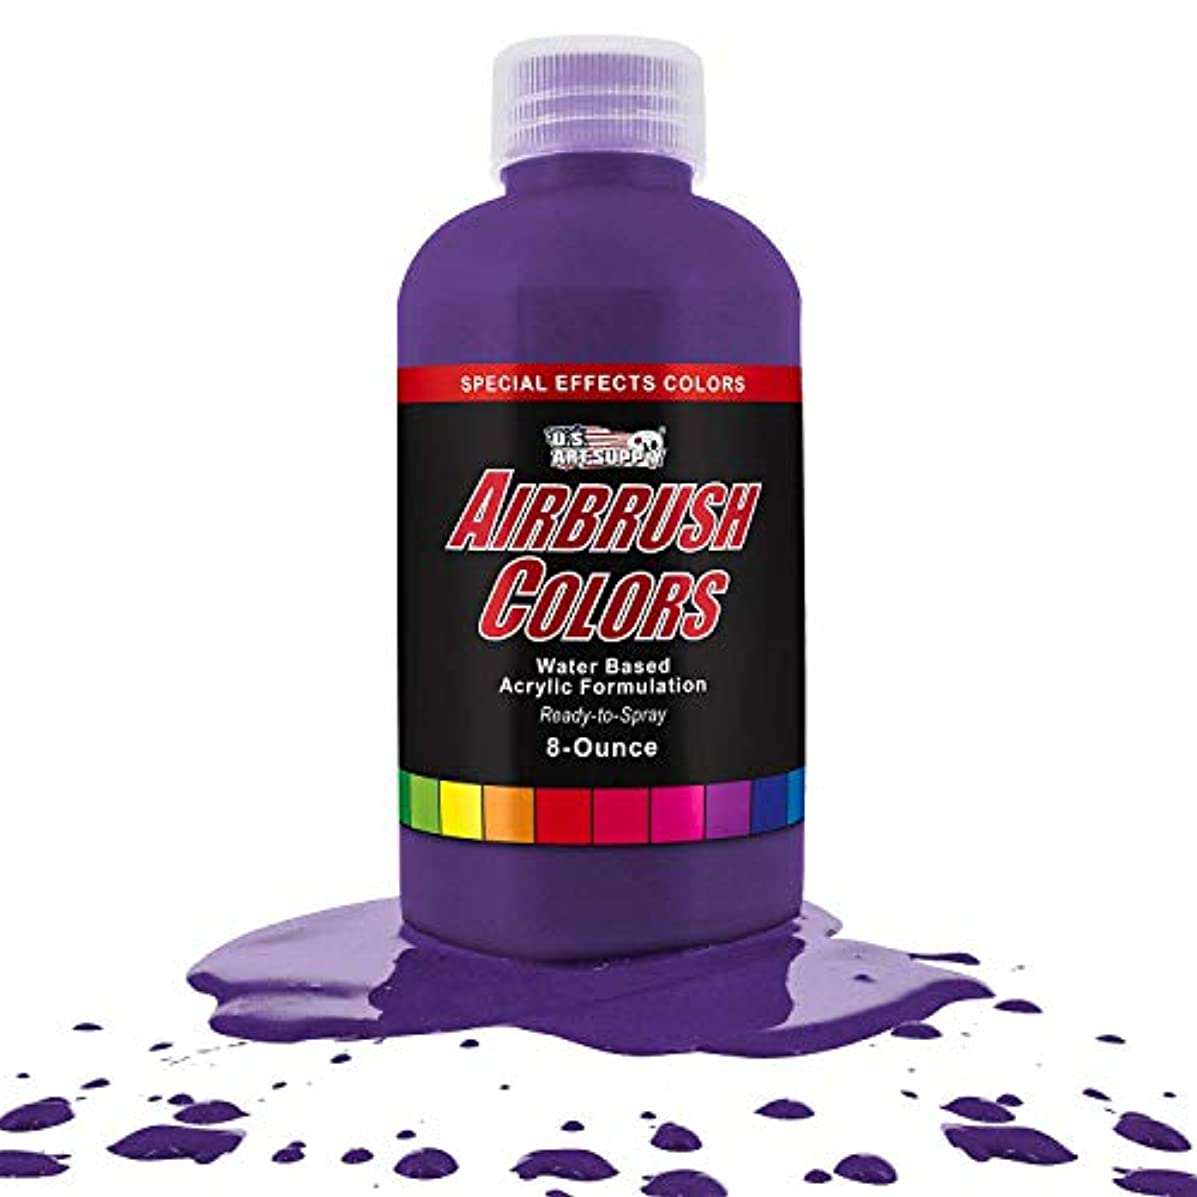 US Art Supply Purple Pearl Pearlized Special Effects Acrylic Airbrush Paint 8 oz.